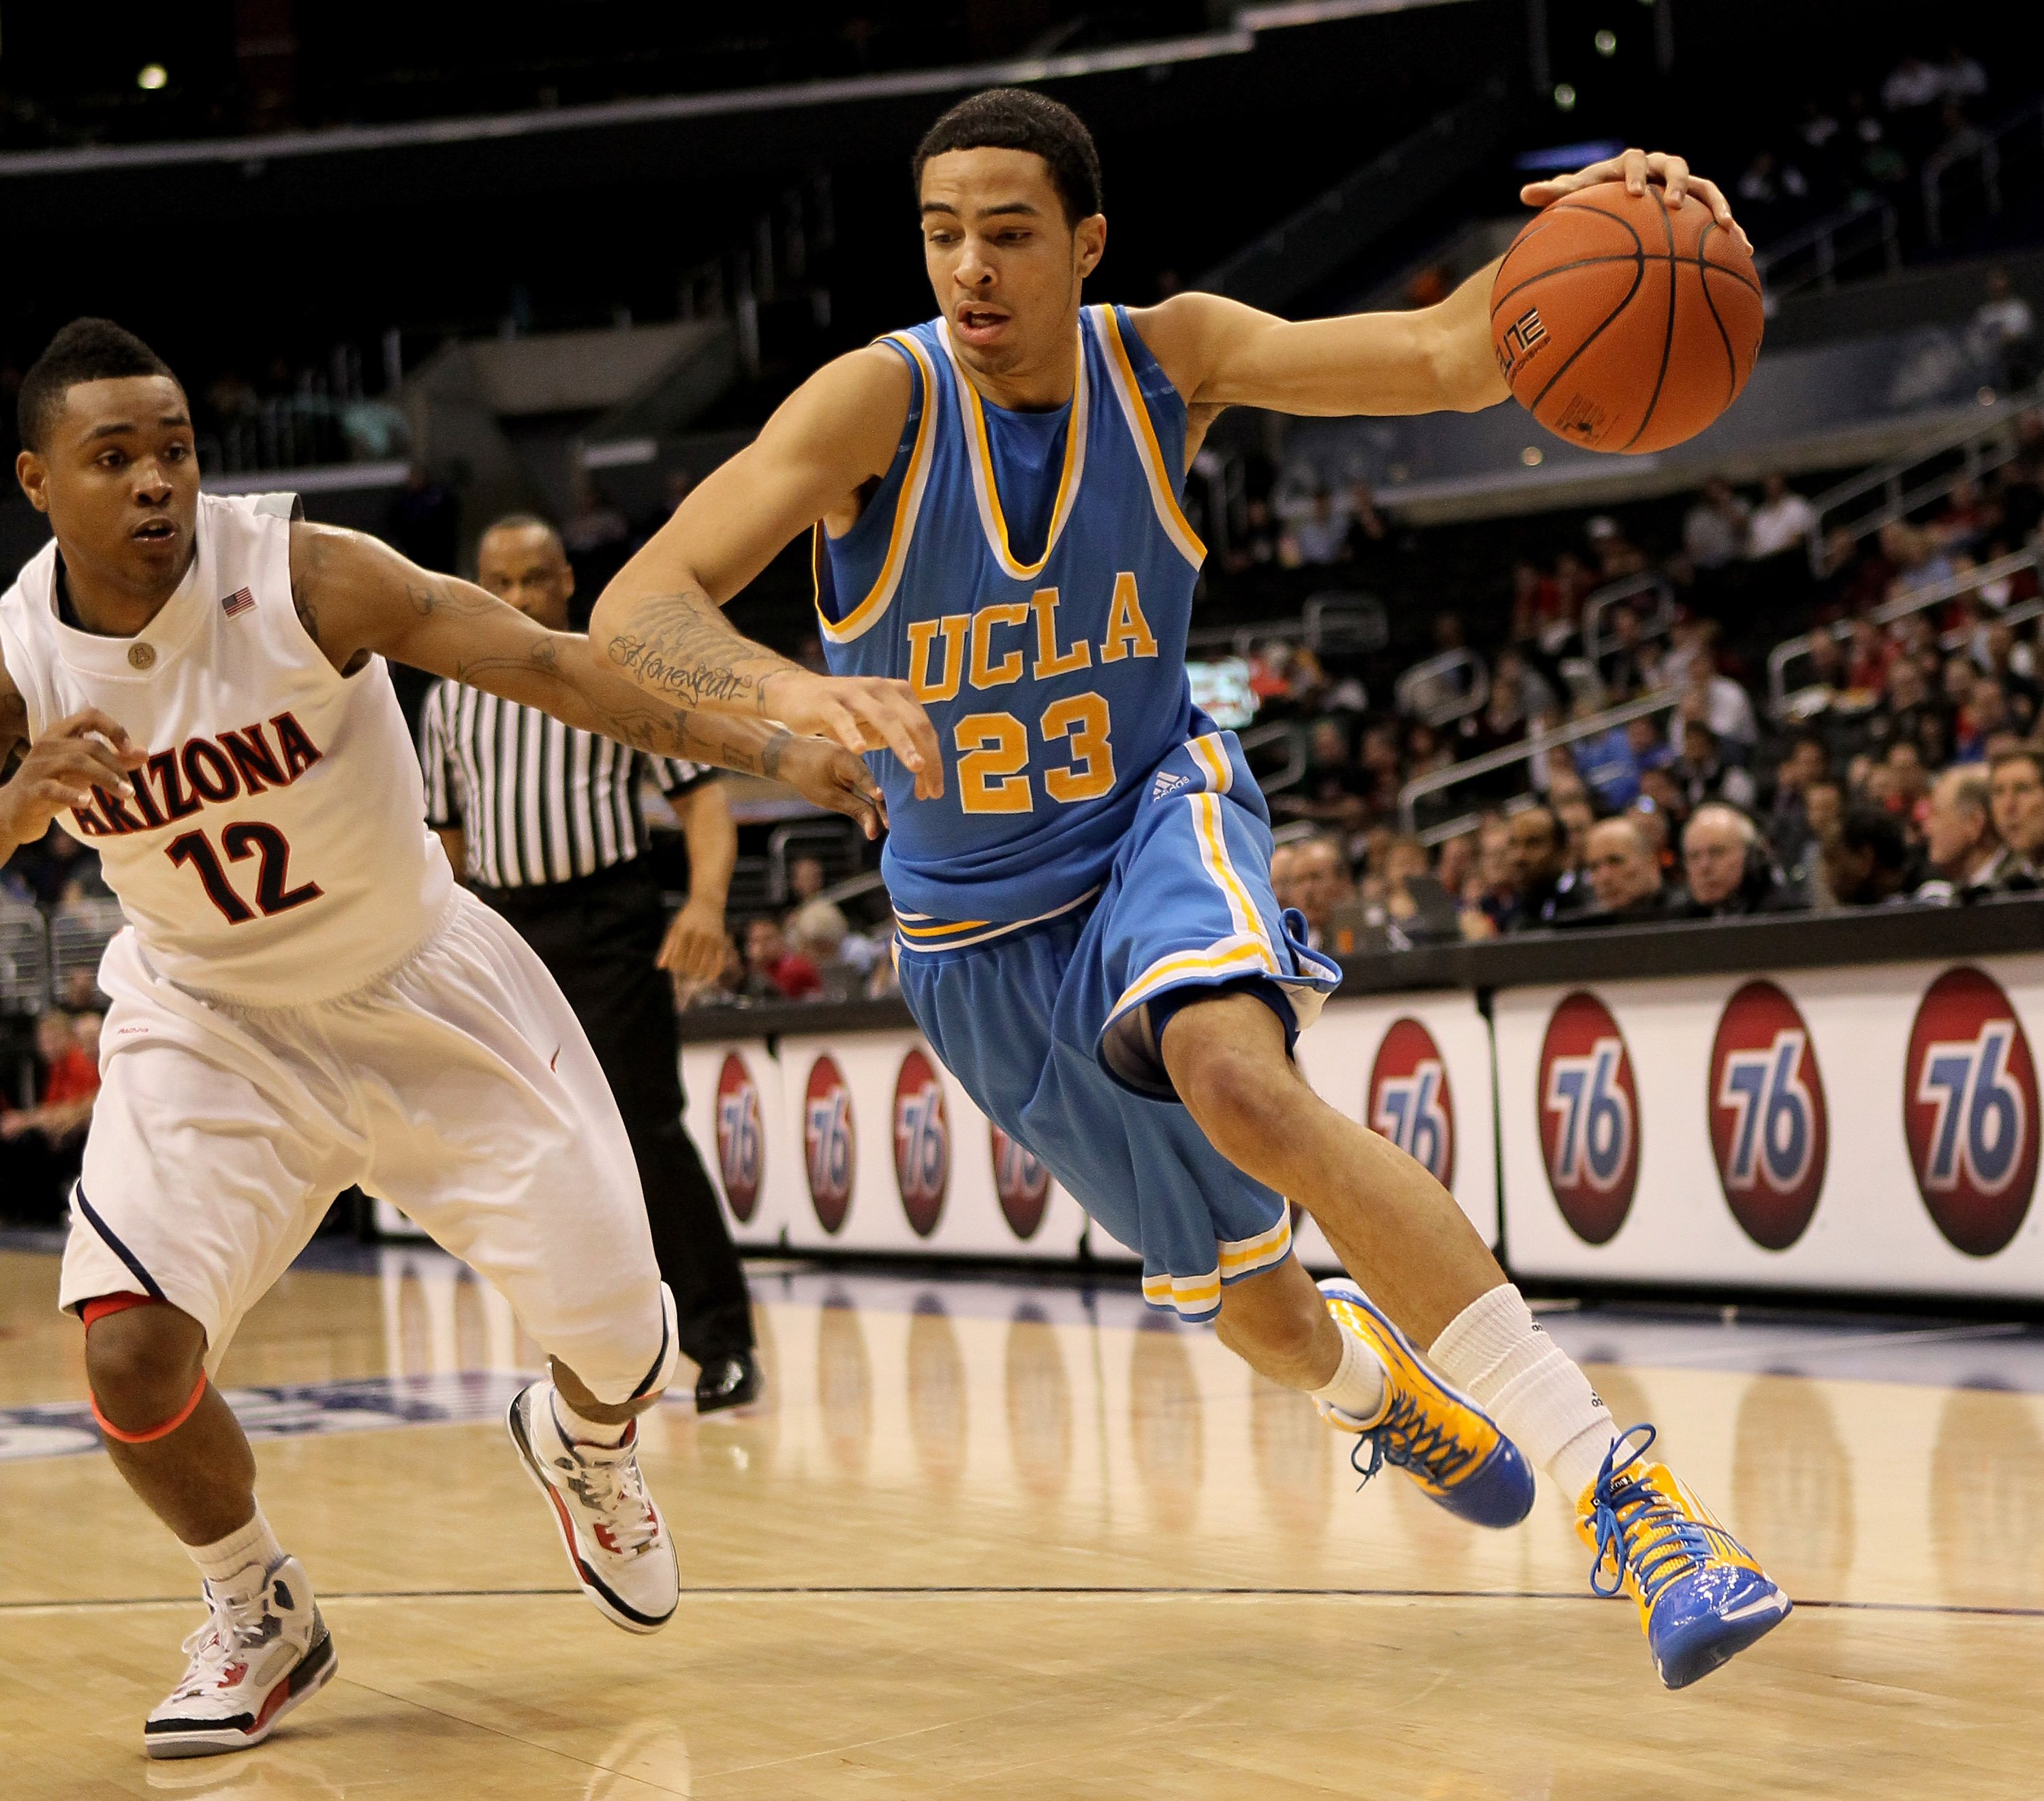 LOS ANGELES, CA - MARCH 11:  Tyler Honeycutt #23 of the UCLA Bruins drives around Lamont Jones #12 of the Arizona Wildcats during the quarterfinals of the Pac-10 Basketball Tournament at Staples Center on March 11, 2010 in Los Angeles, California. UCLA wo